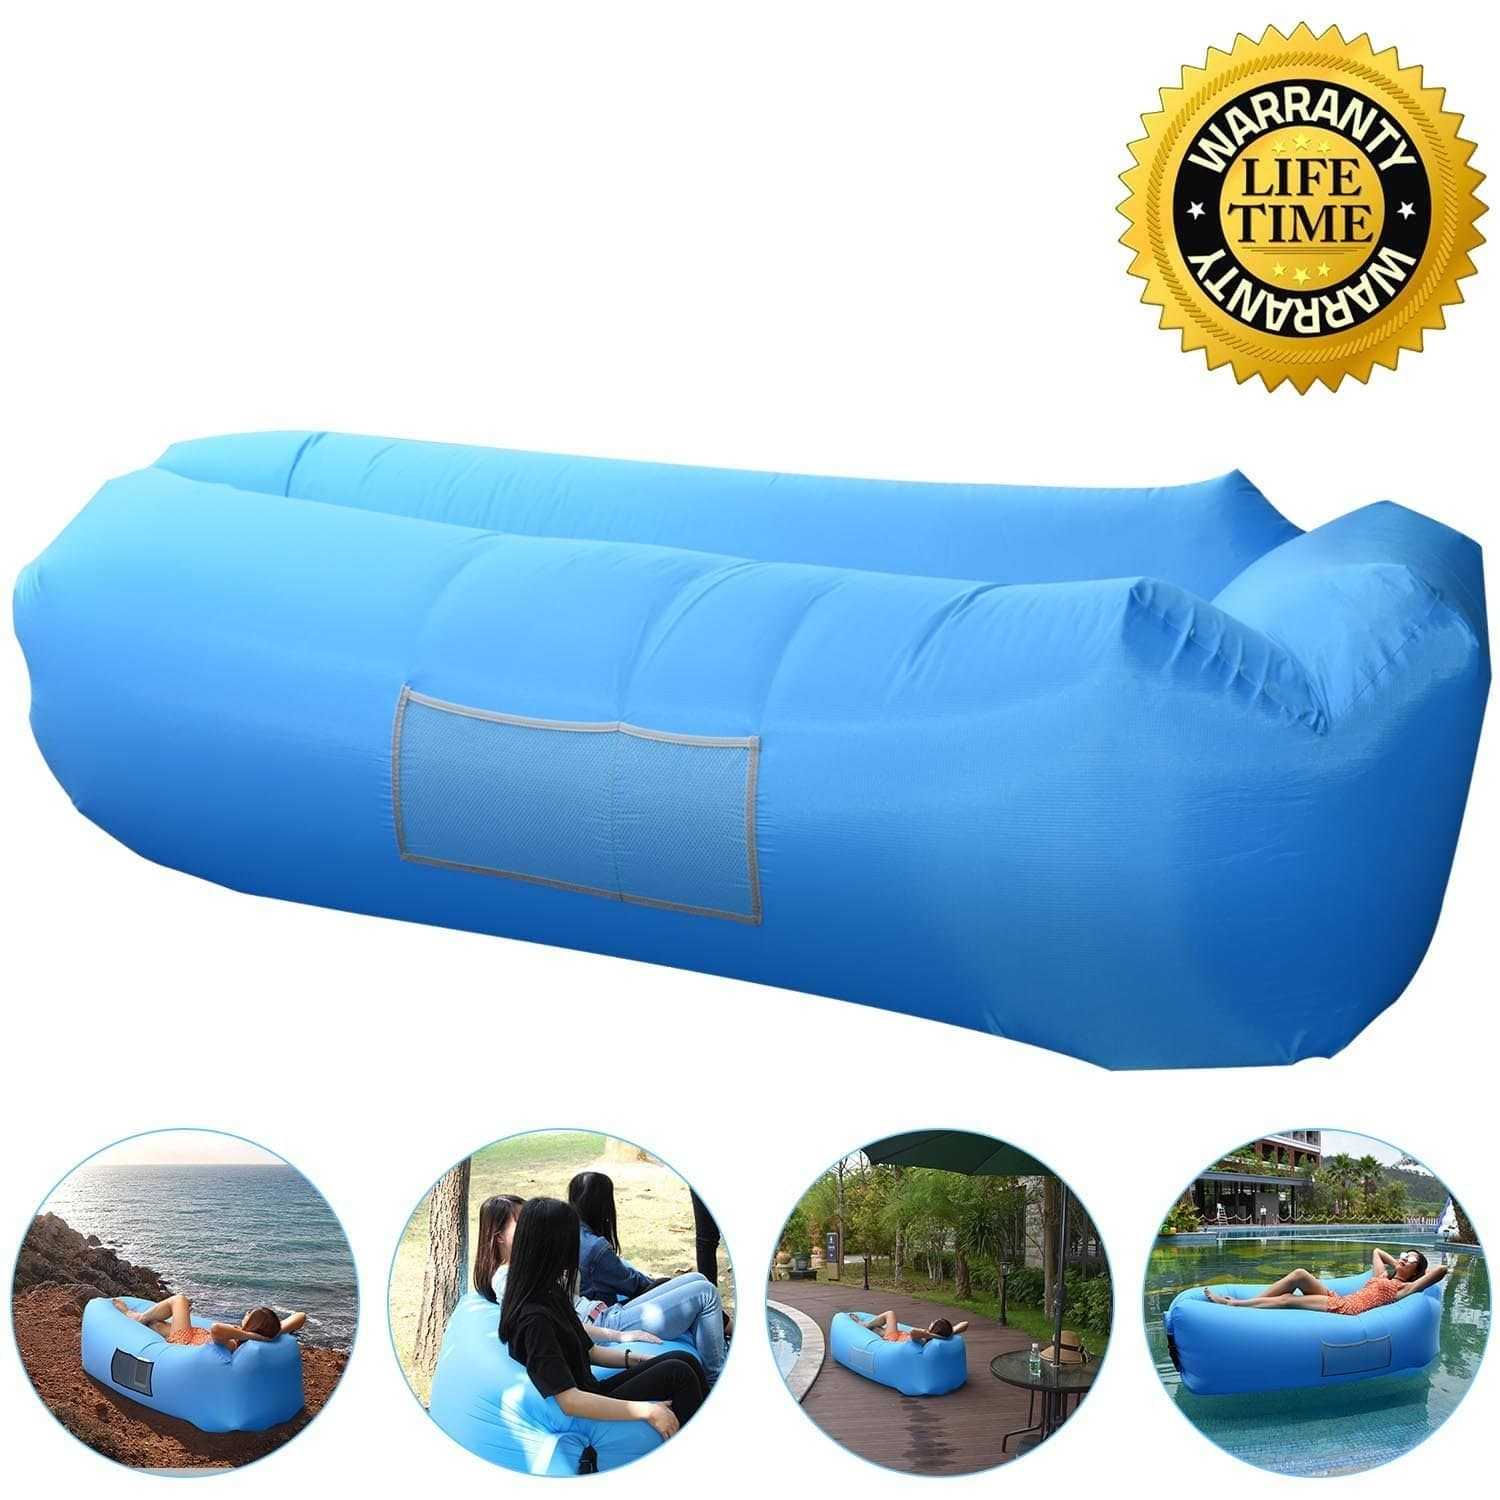 Anglink Outdoor Inflatable Lounger Couch Air Sofa Blow Up Lounge Chair With Carrying Bag For Travelling Inflatable Lounger Outdoor Inflatables Camping Chairs